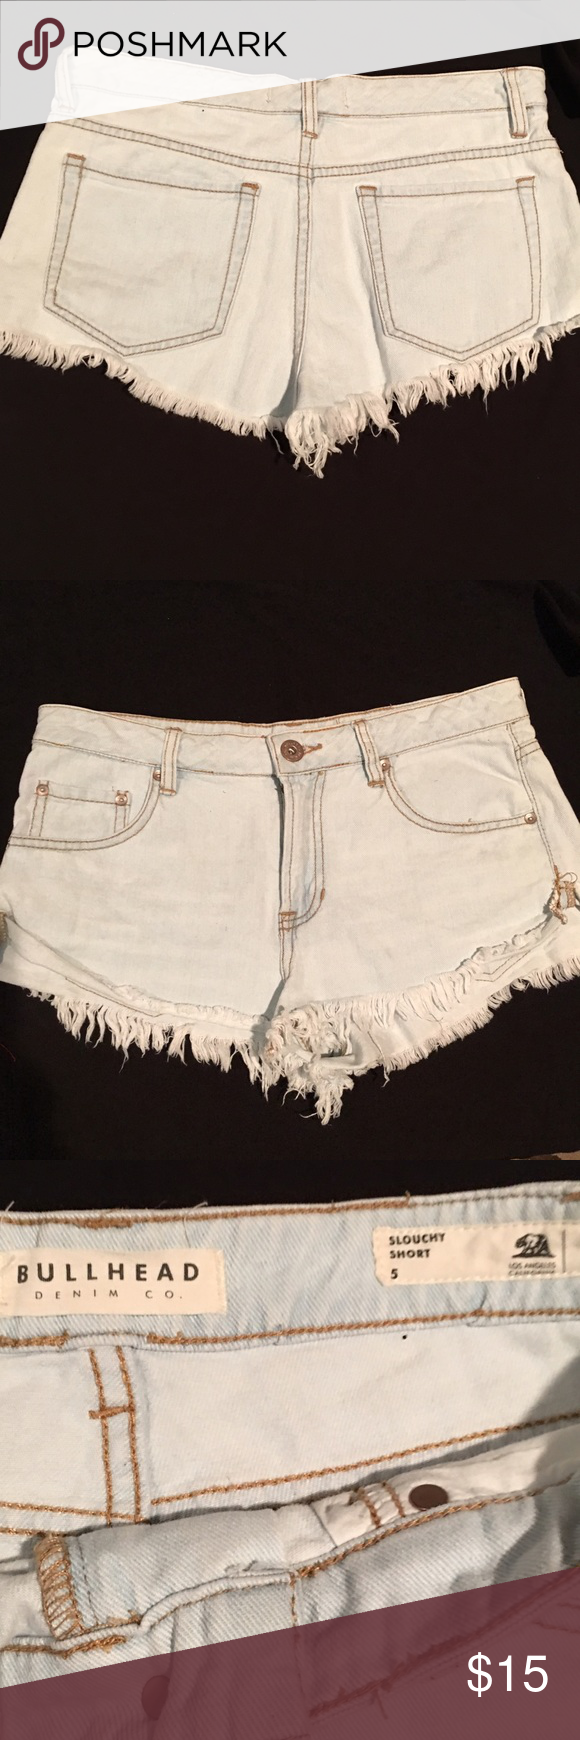 Bull Head Acid Washed cut off Jean shorts size 0 Acid Washed Slouchy fit cut off  jeans shorts size small - good clean condition. Bull Head  Shorts Jean Shorts